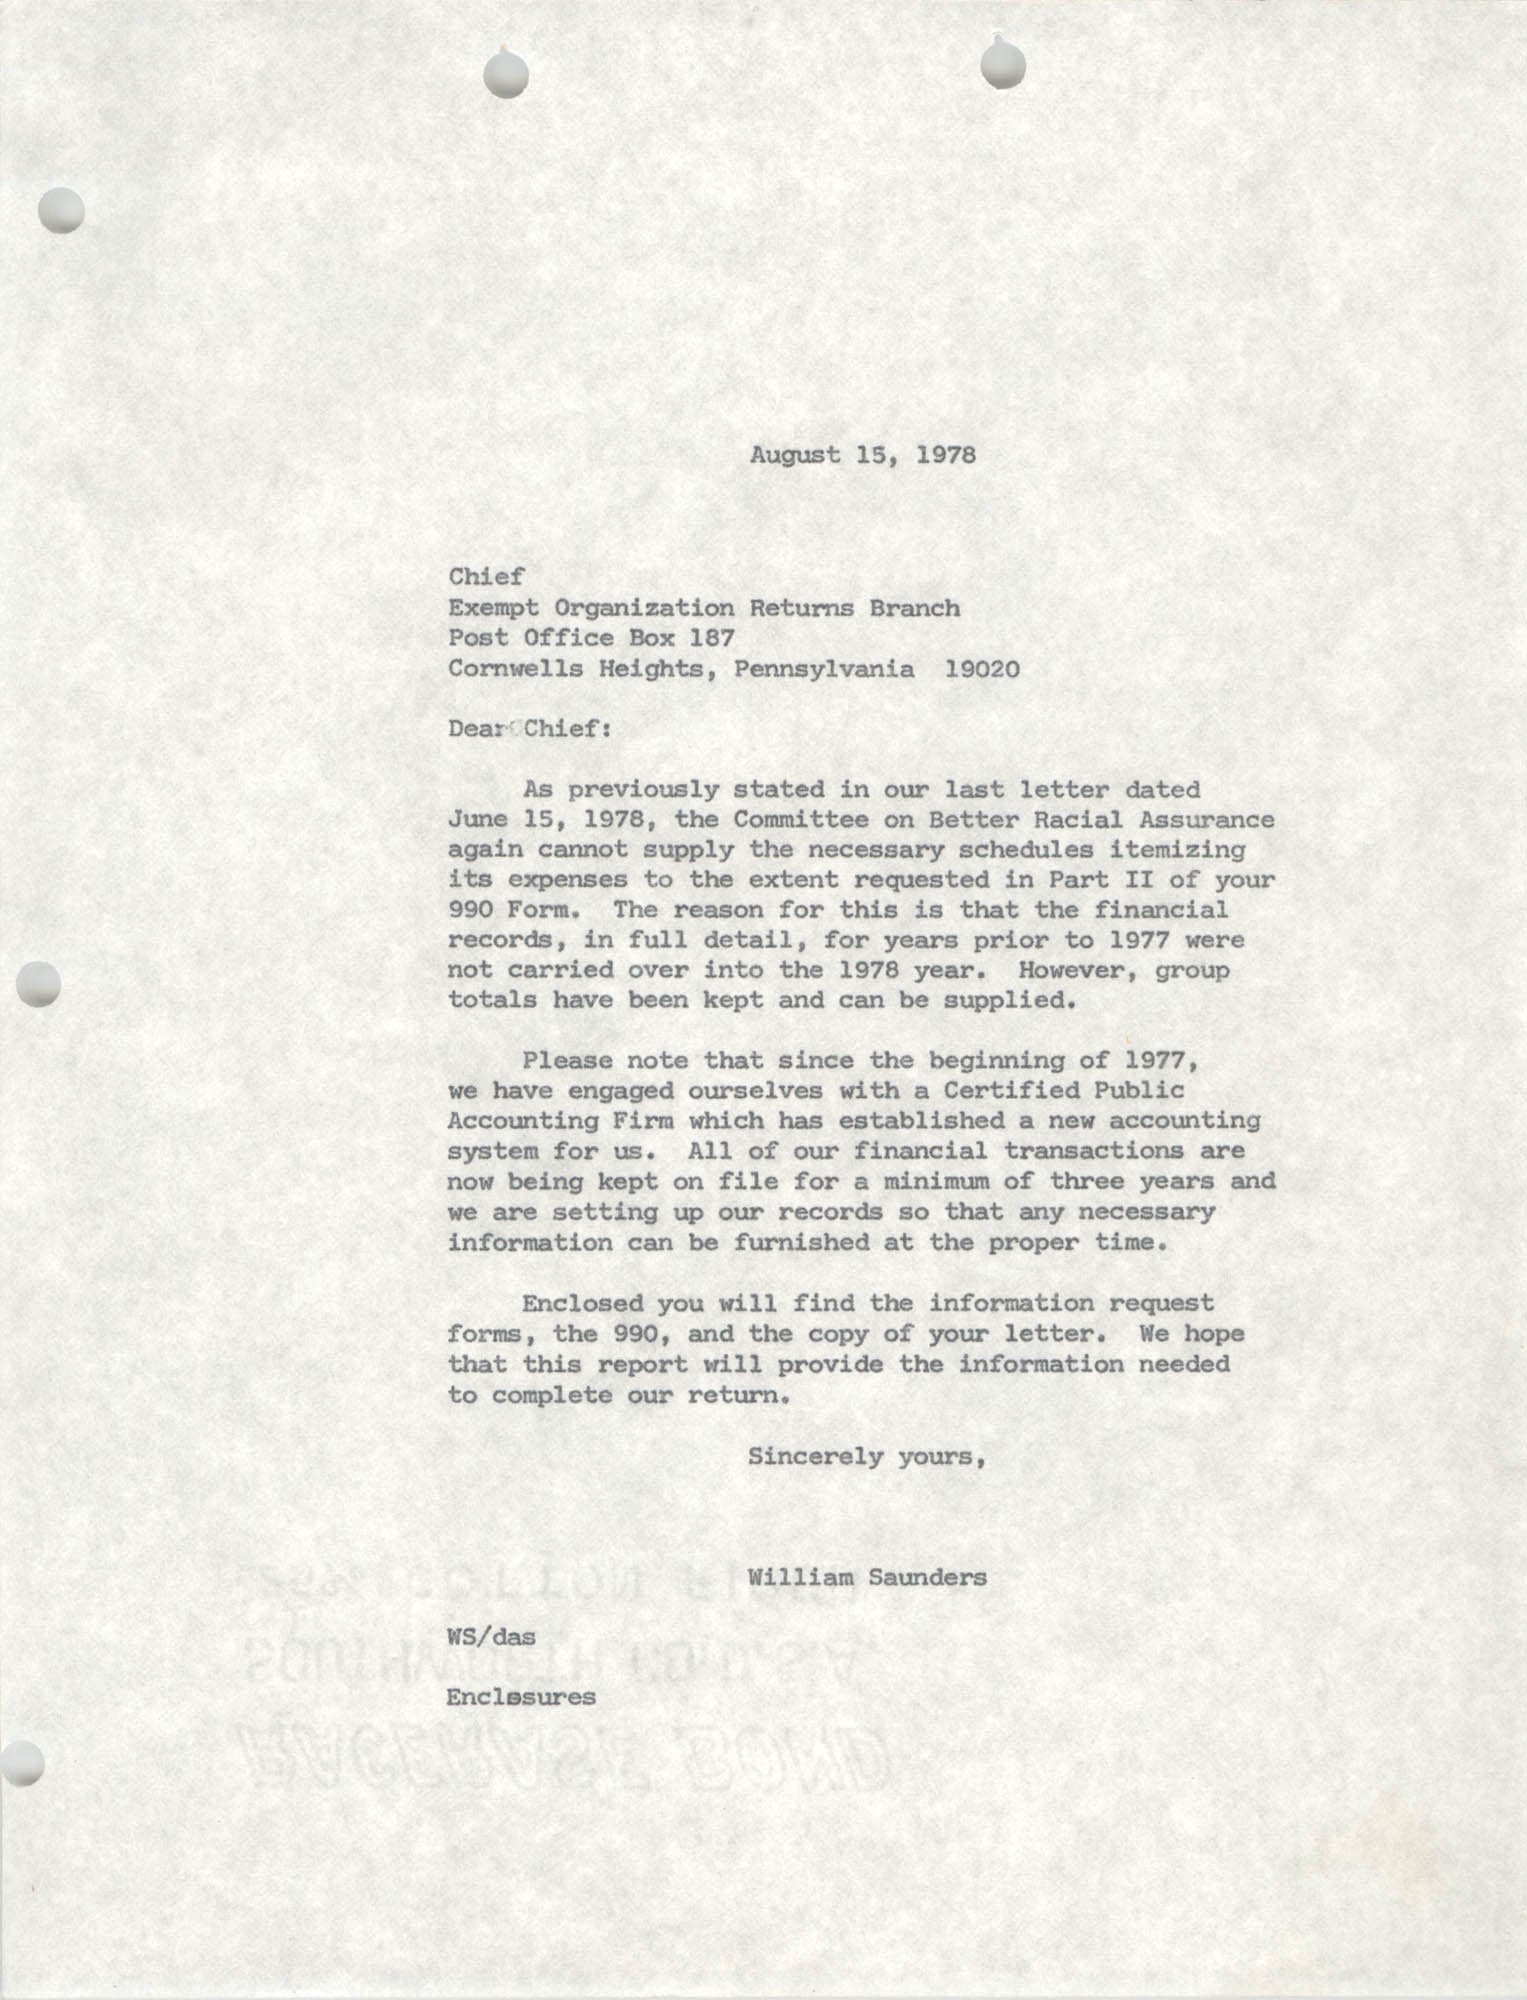 Letter from William Saunders to Exempt Organization Returns Branch, August 15, 1978